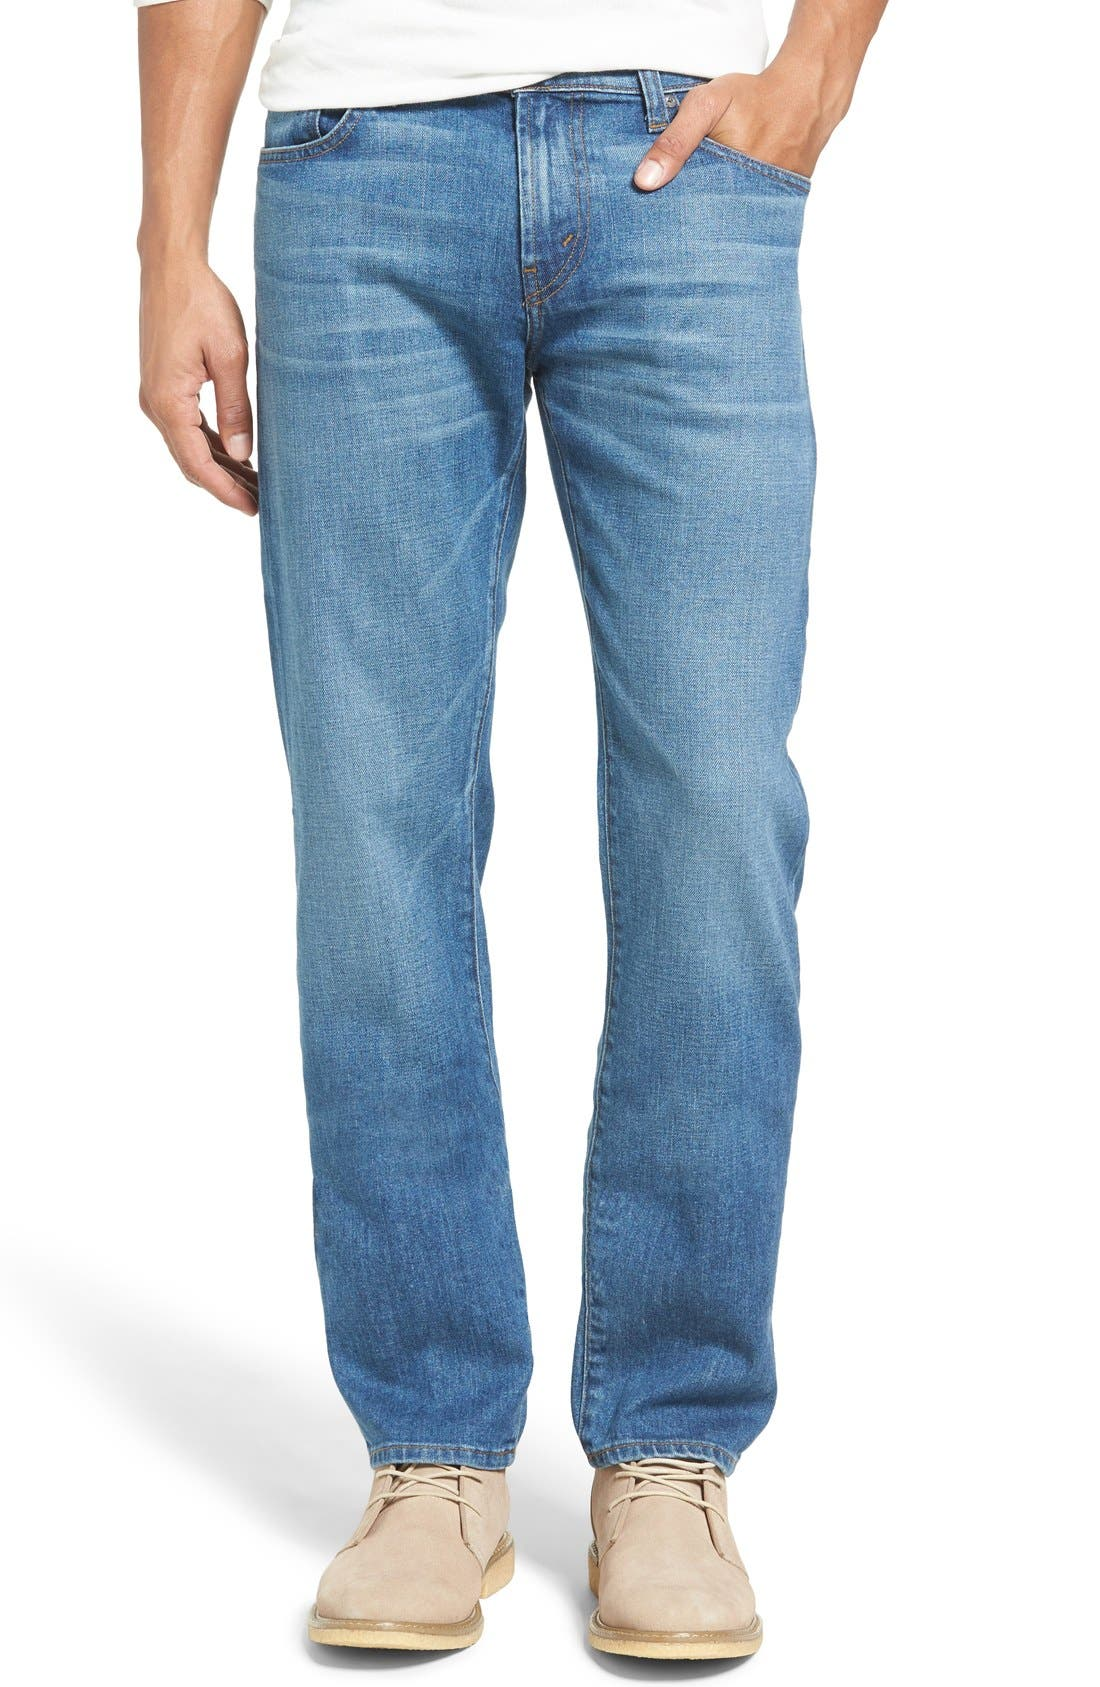 Alternate Image 1 Selected - J Brand Kane Slim Straight Leg Jeans (Kamet)